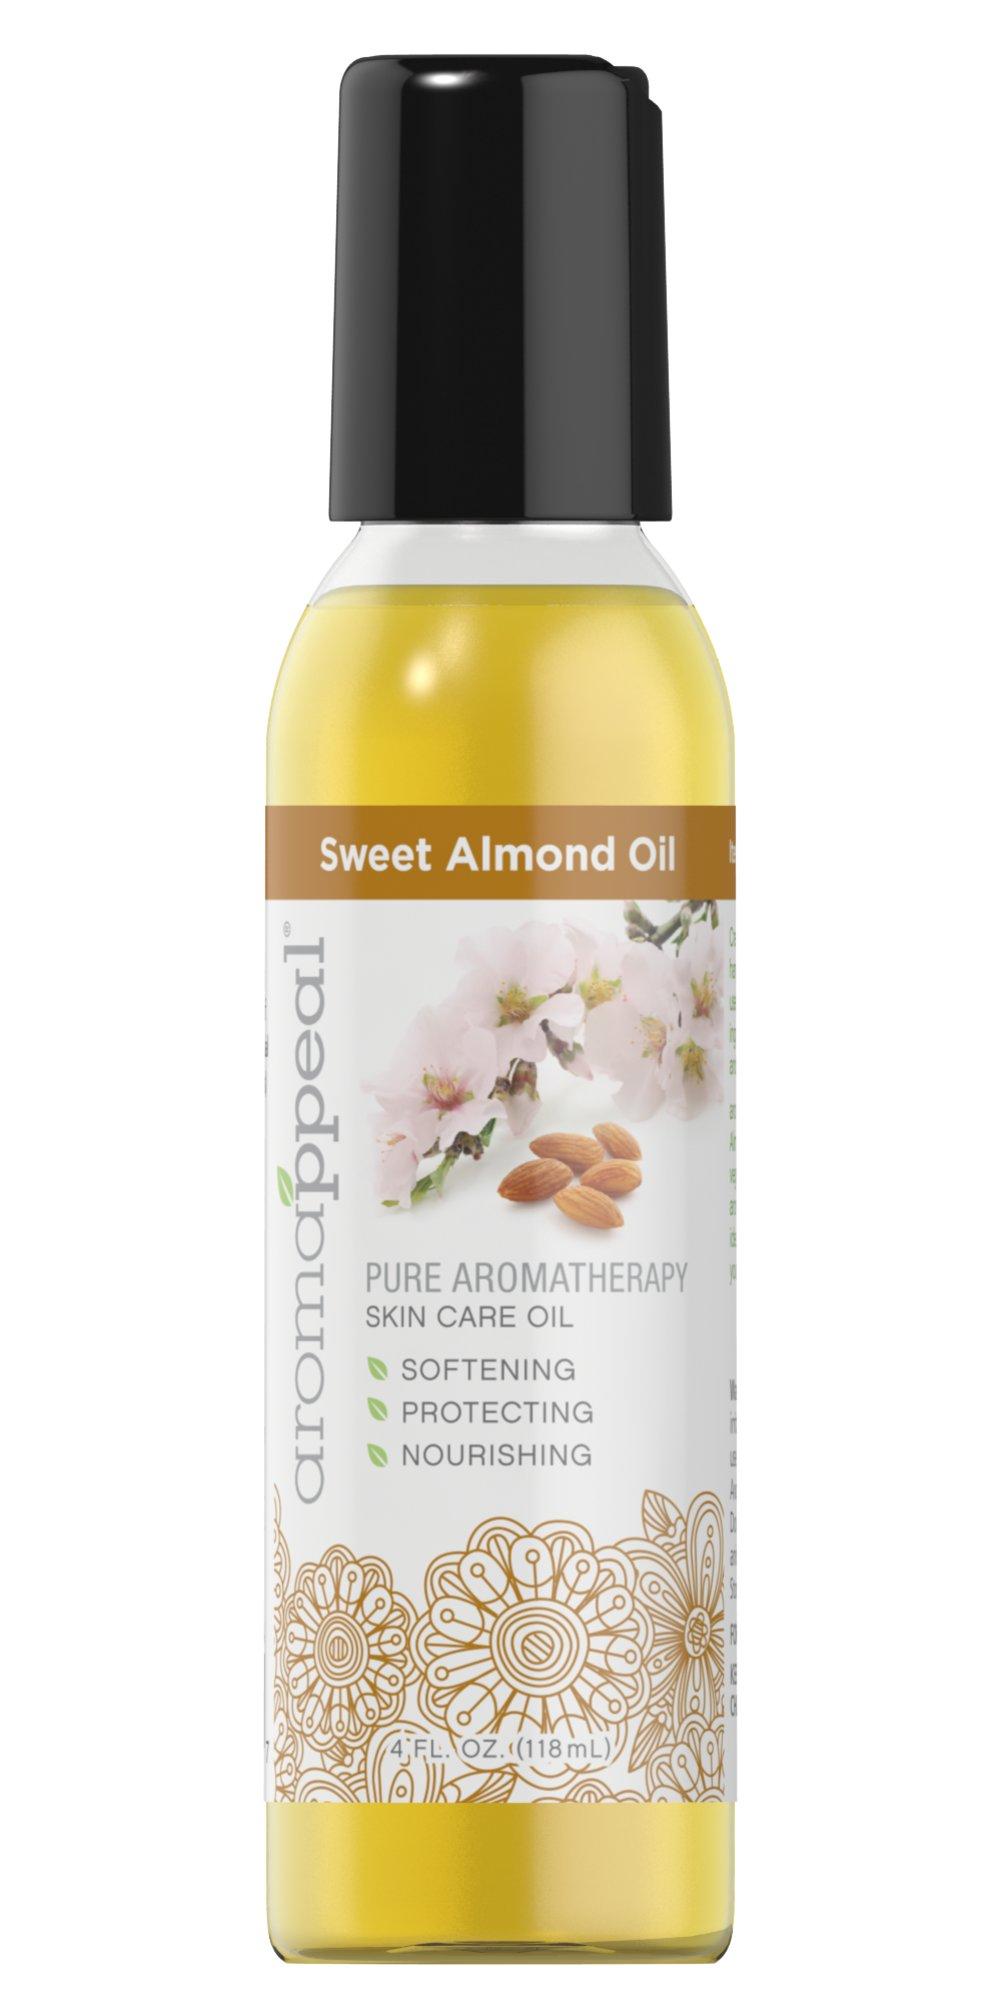 Sweet Almond Oil <p>Created to bring you harmony, Aromappeal™ uses the most balanced ingredients to lift your spirits and soothe your mind.</p><p>Aromappeal™ Sweet Almond Oil is a natural vegetable oil with a neutral aroma. This base makes an ideal ingredient to create your own aroma recipe.</p> 4 oz Oil  $6.99